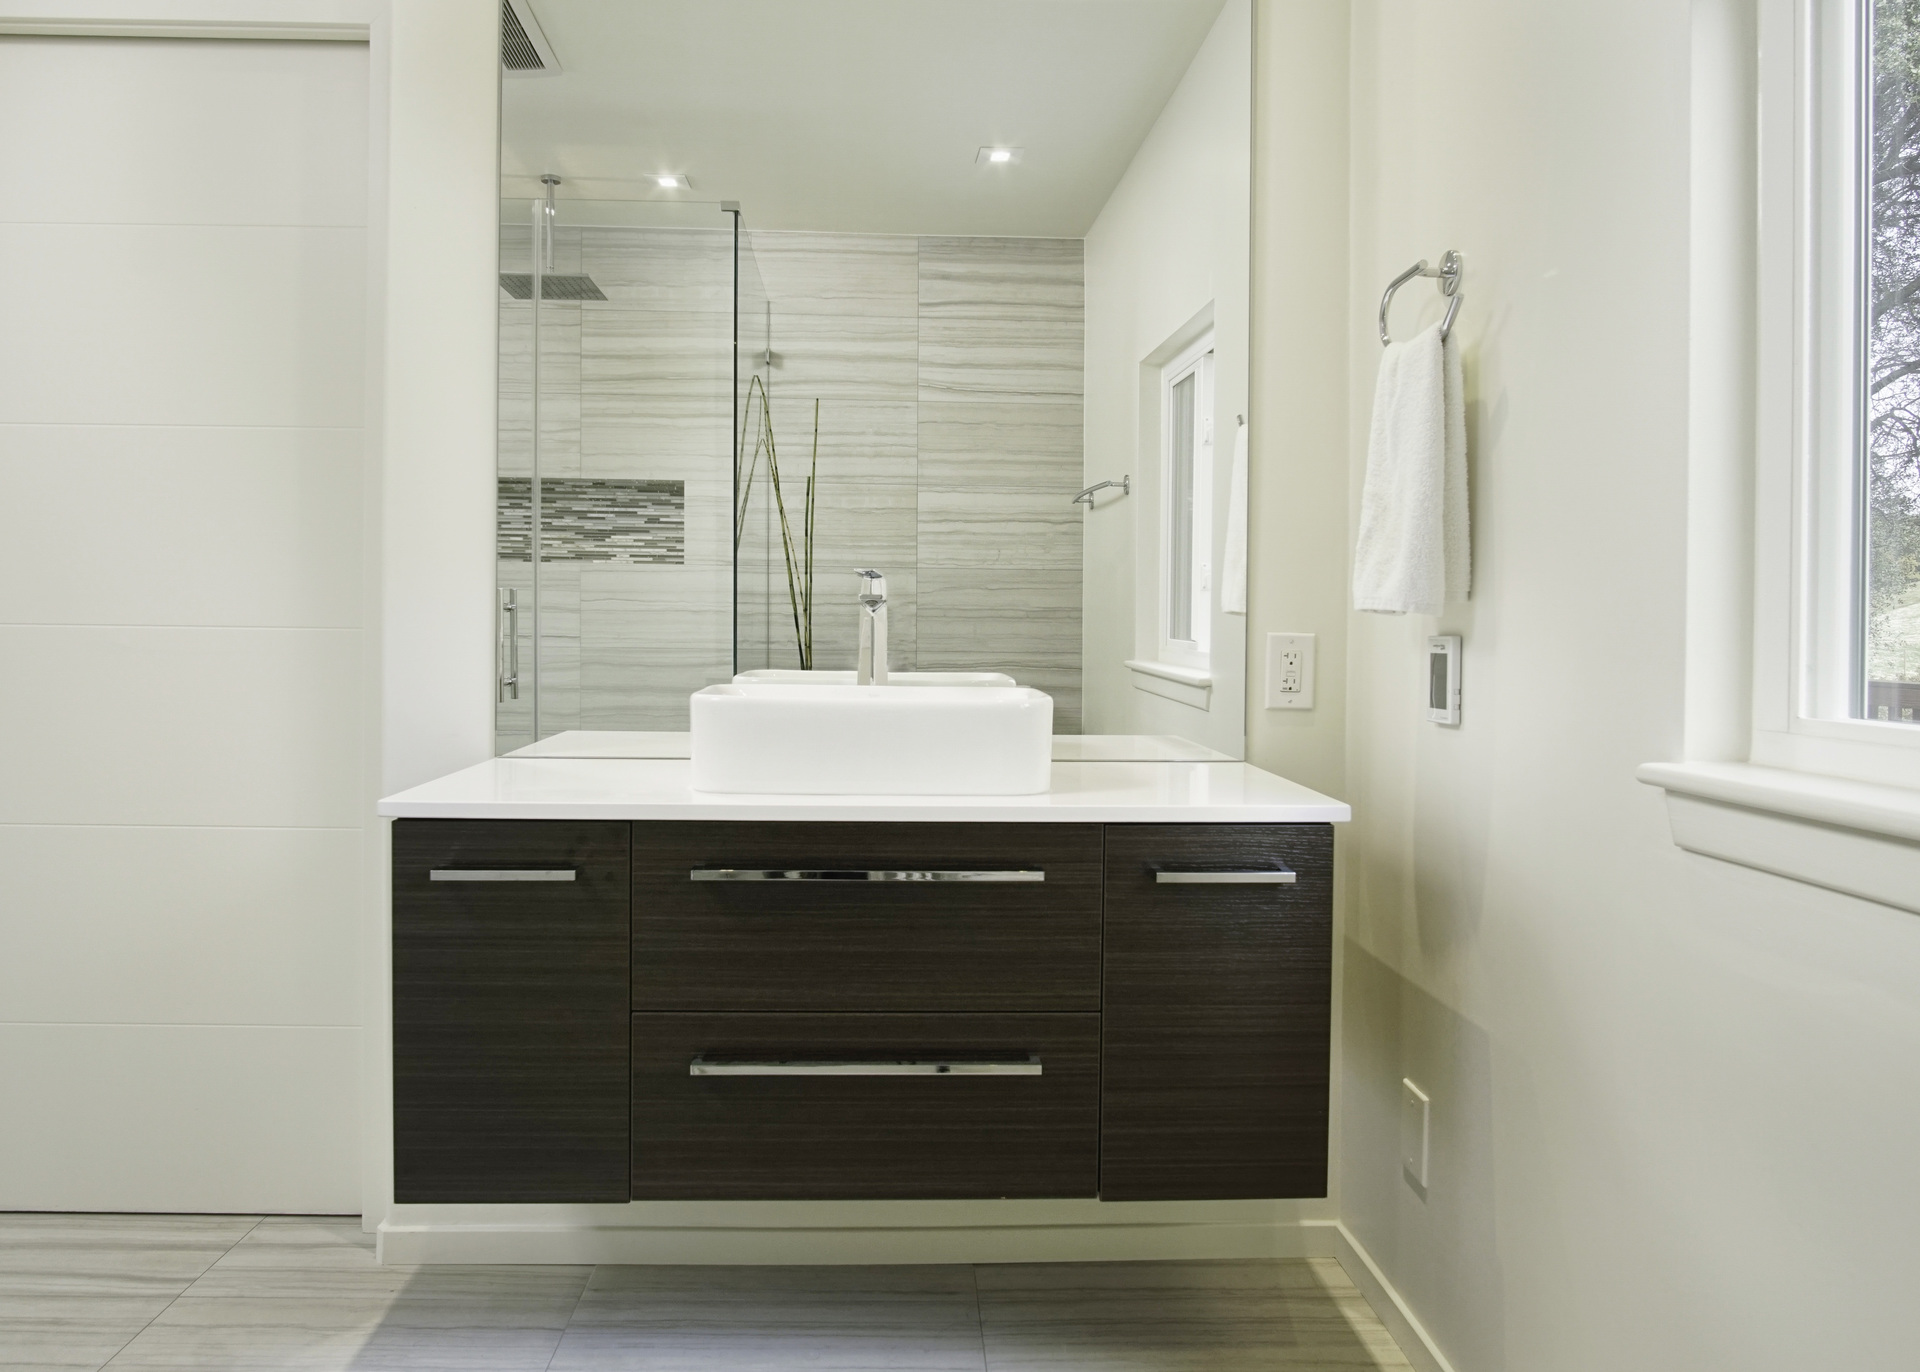 Case study bathrooms general construction remodeling for How much does a new bathroom cost 2017